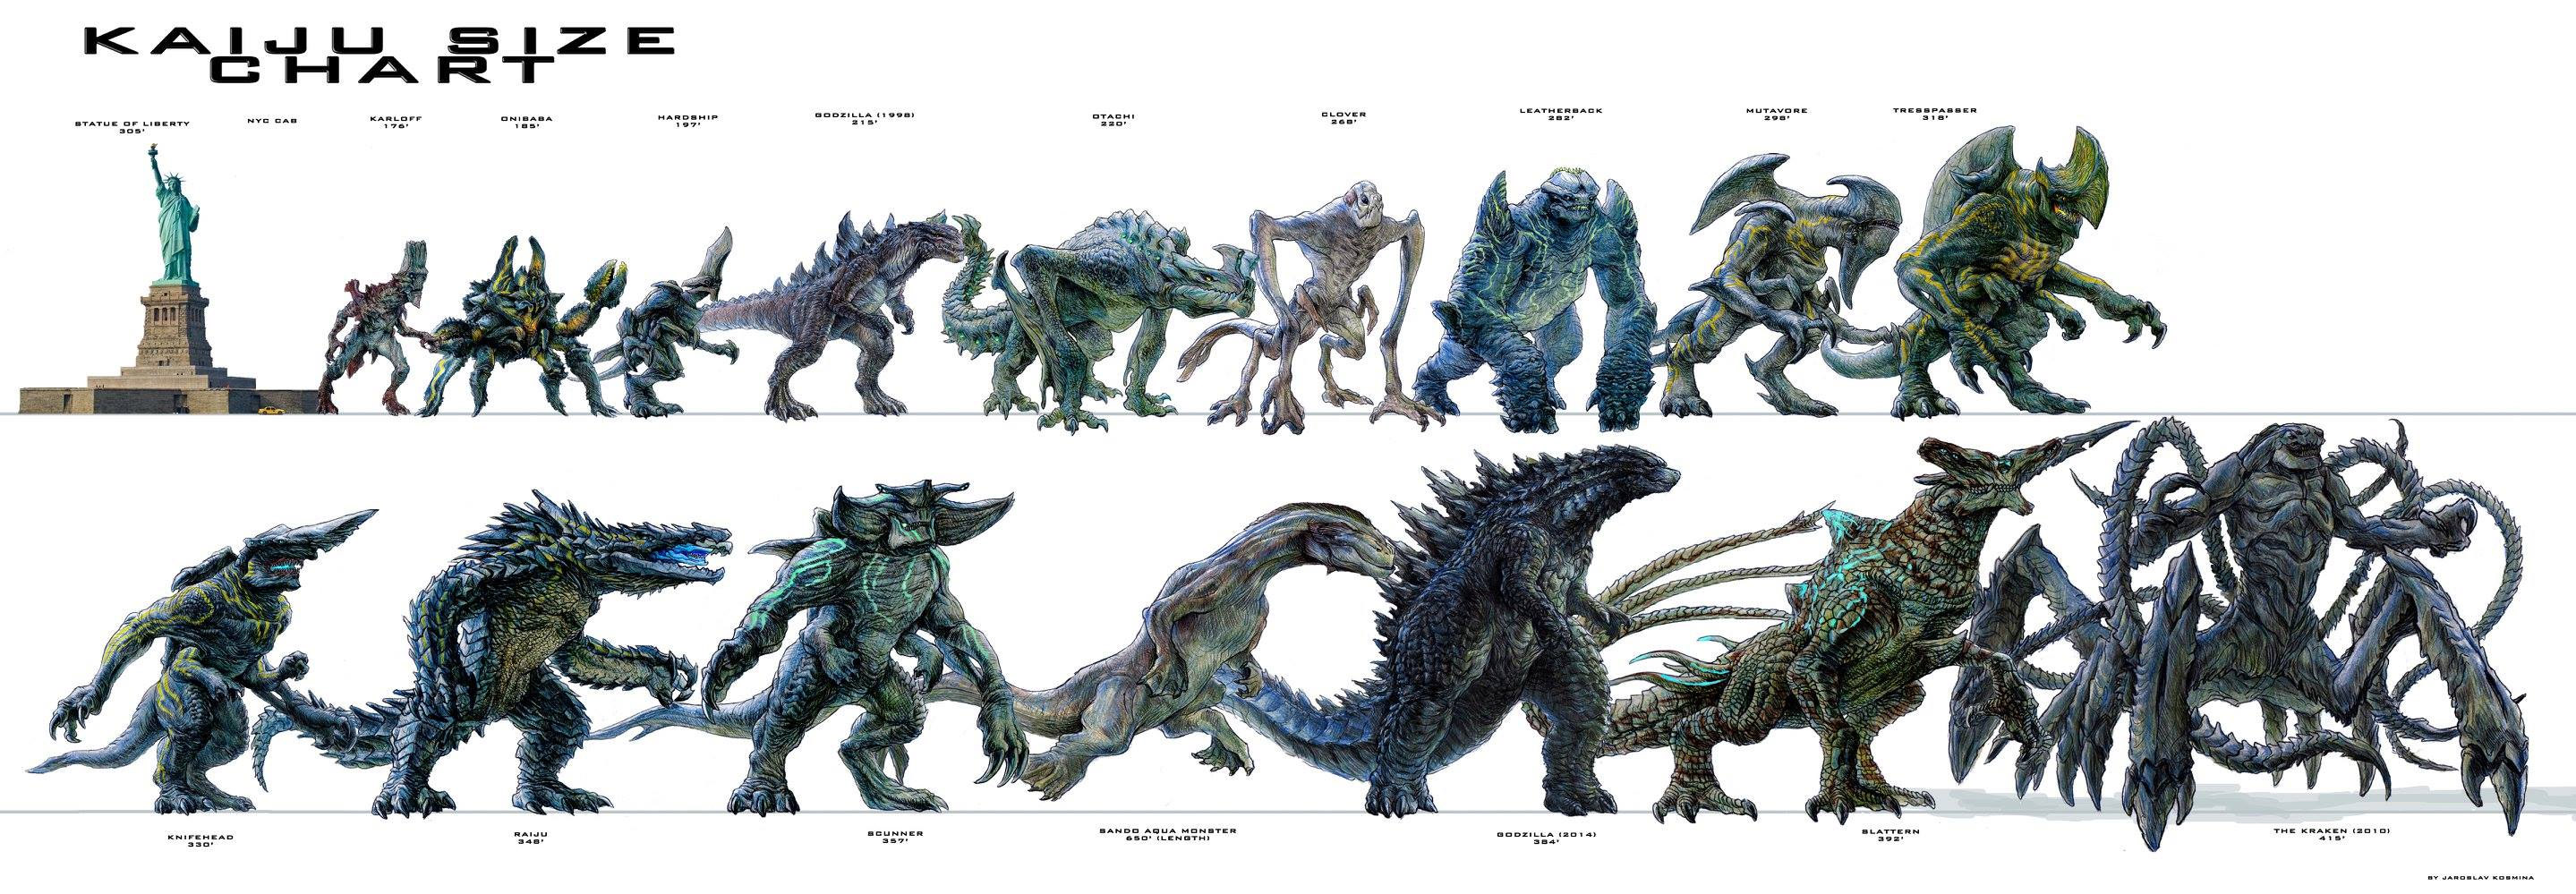 kaiju_size_comparison_chart_full